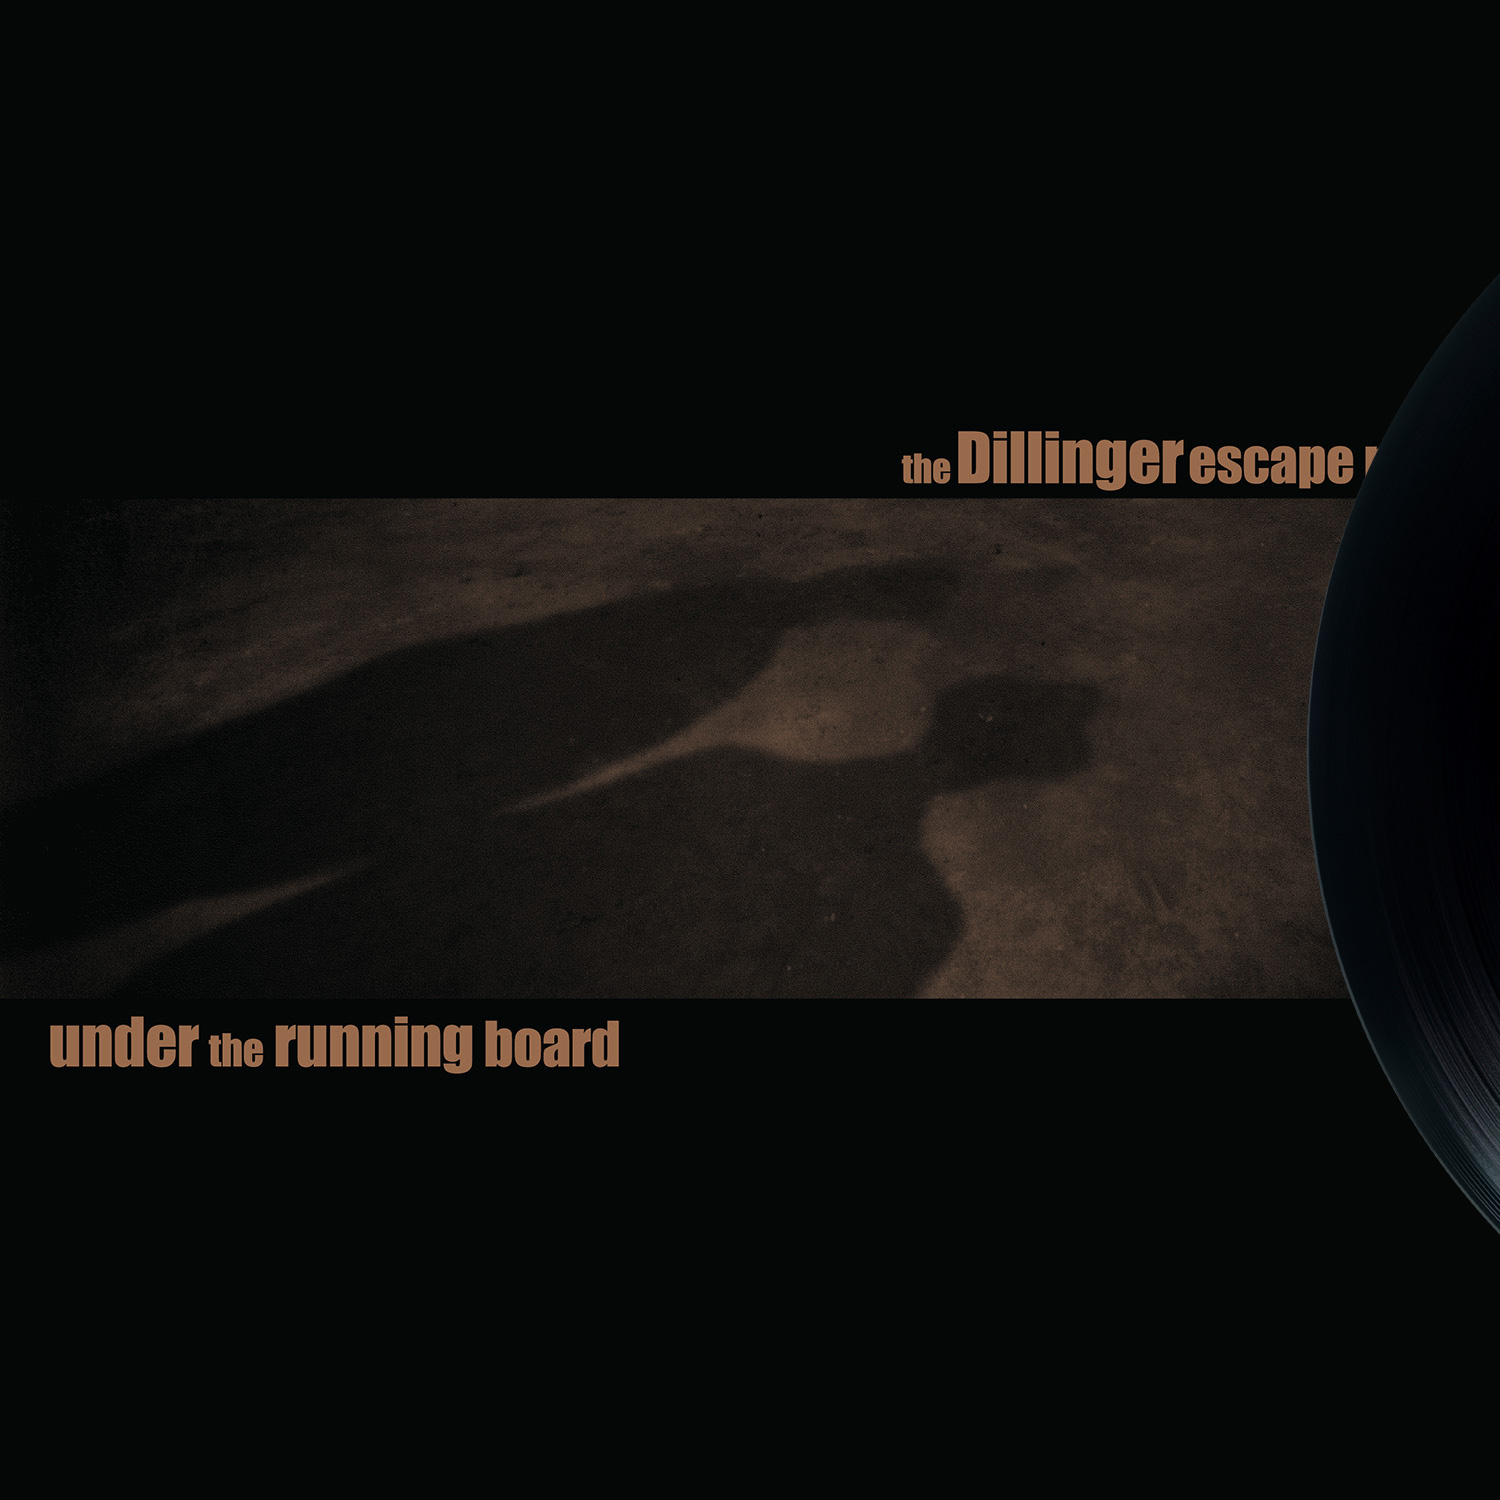 "THE DILLINGER ESCAPE PLAN Under The Running Board - Vinyl 10"" (bronze)"